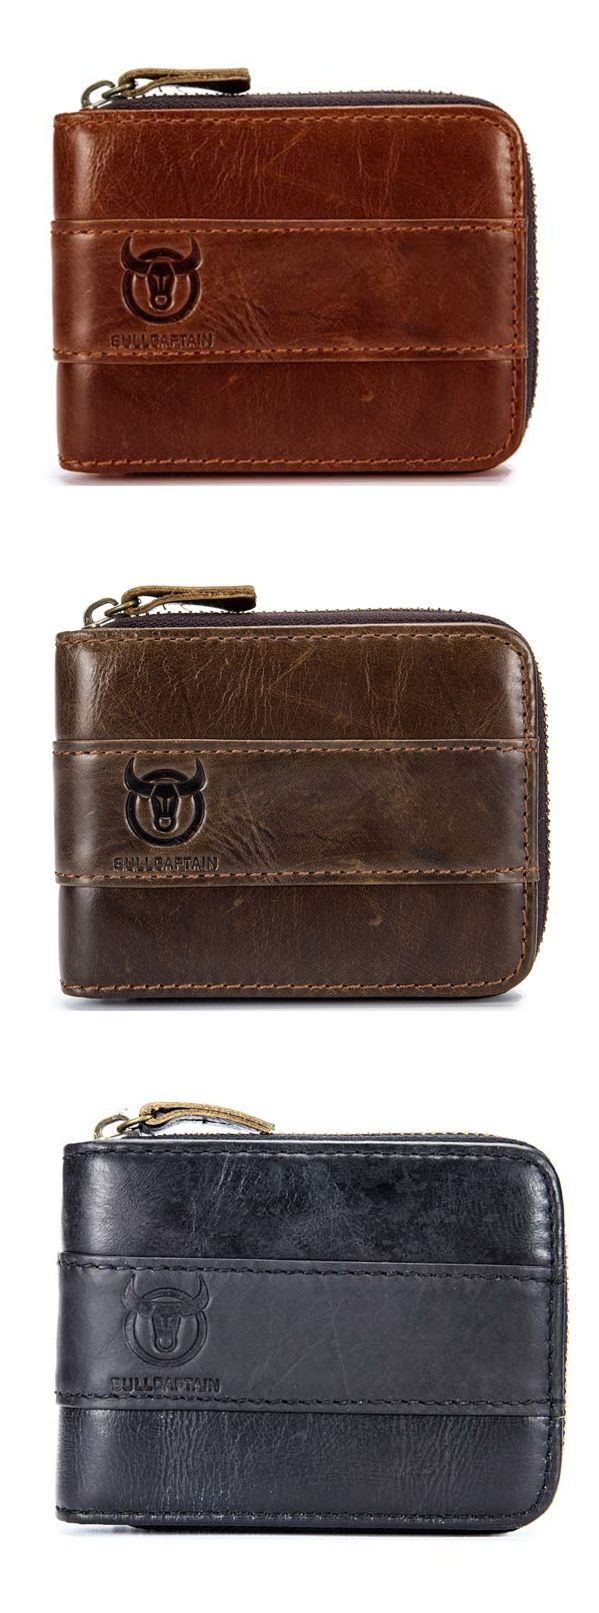 RFID Antimagnetic Vintage Genuine Leather 11 Card Slots Coin Bag Wallet For Men.Shop Today!